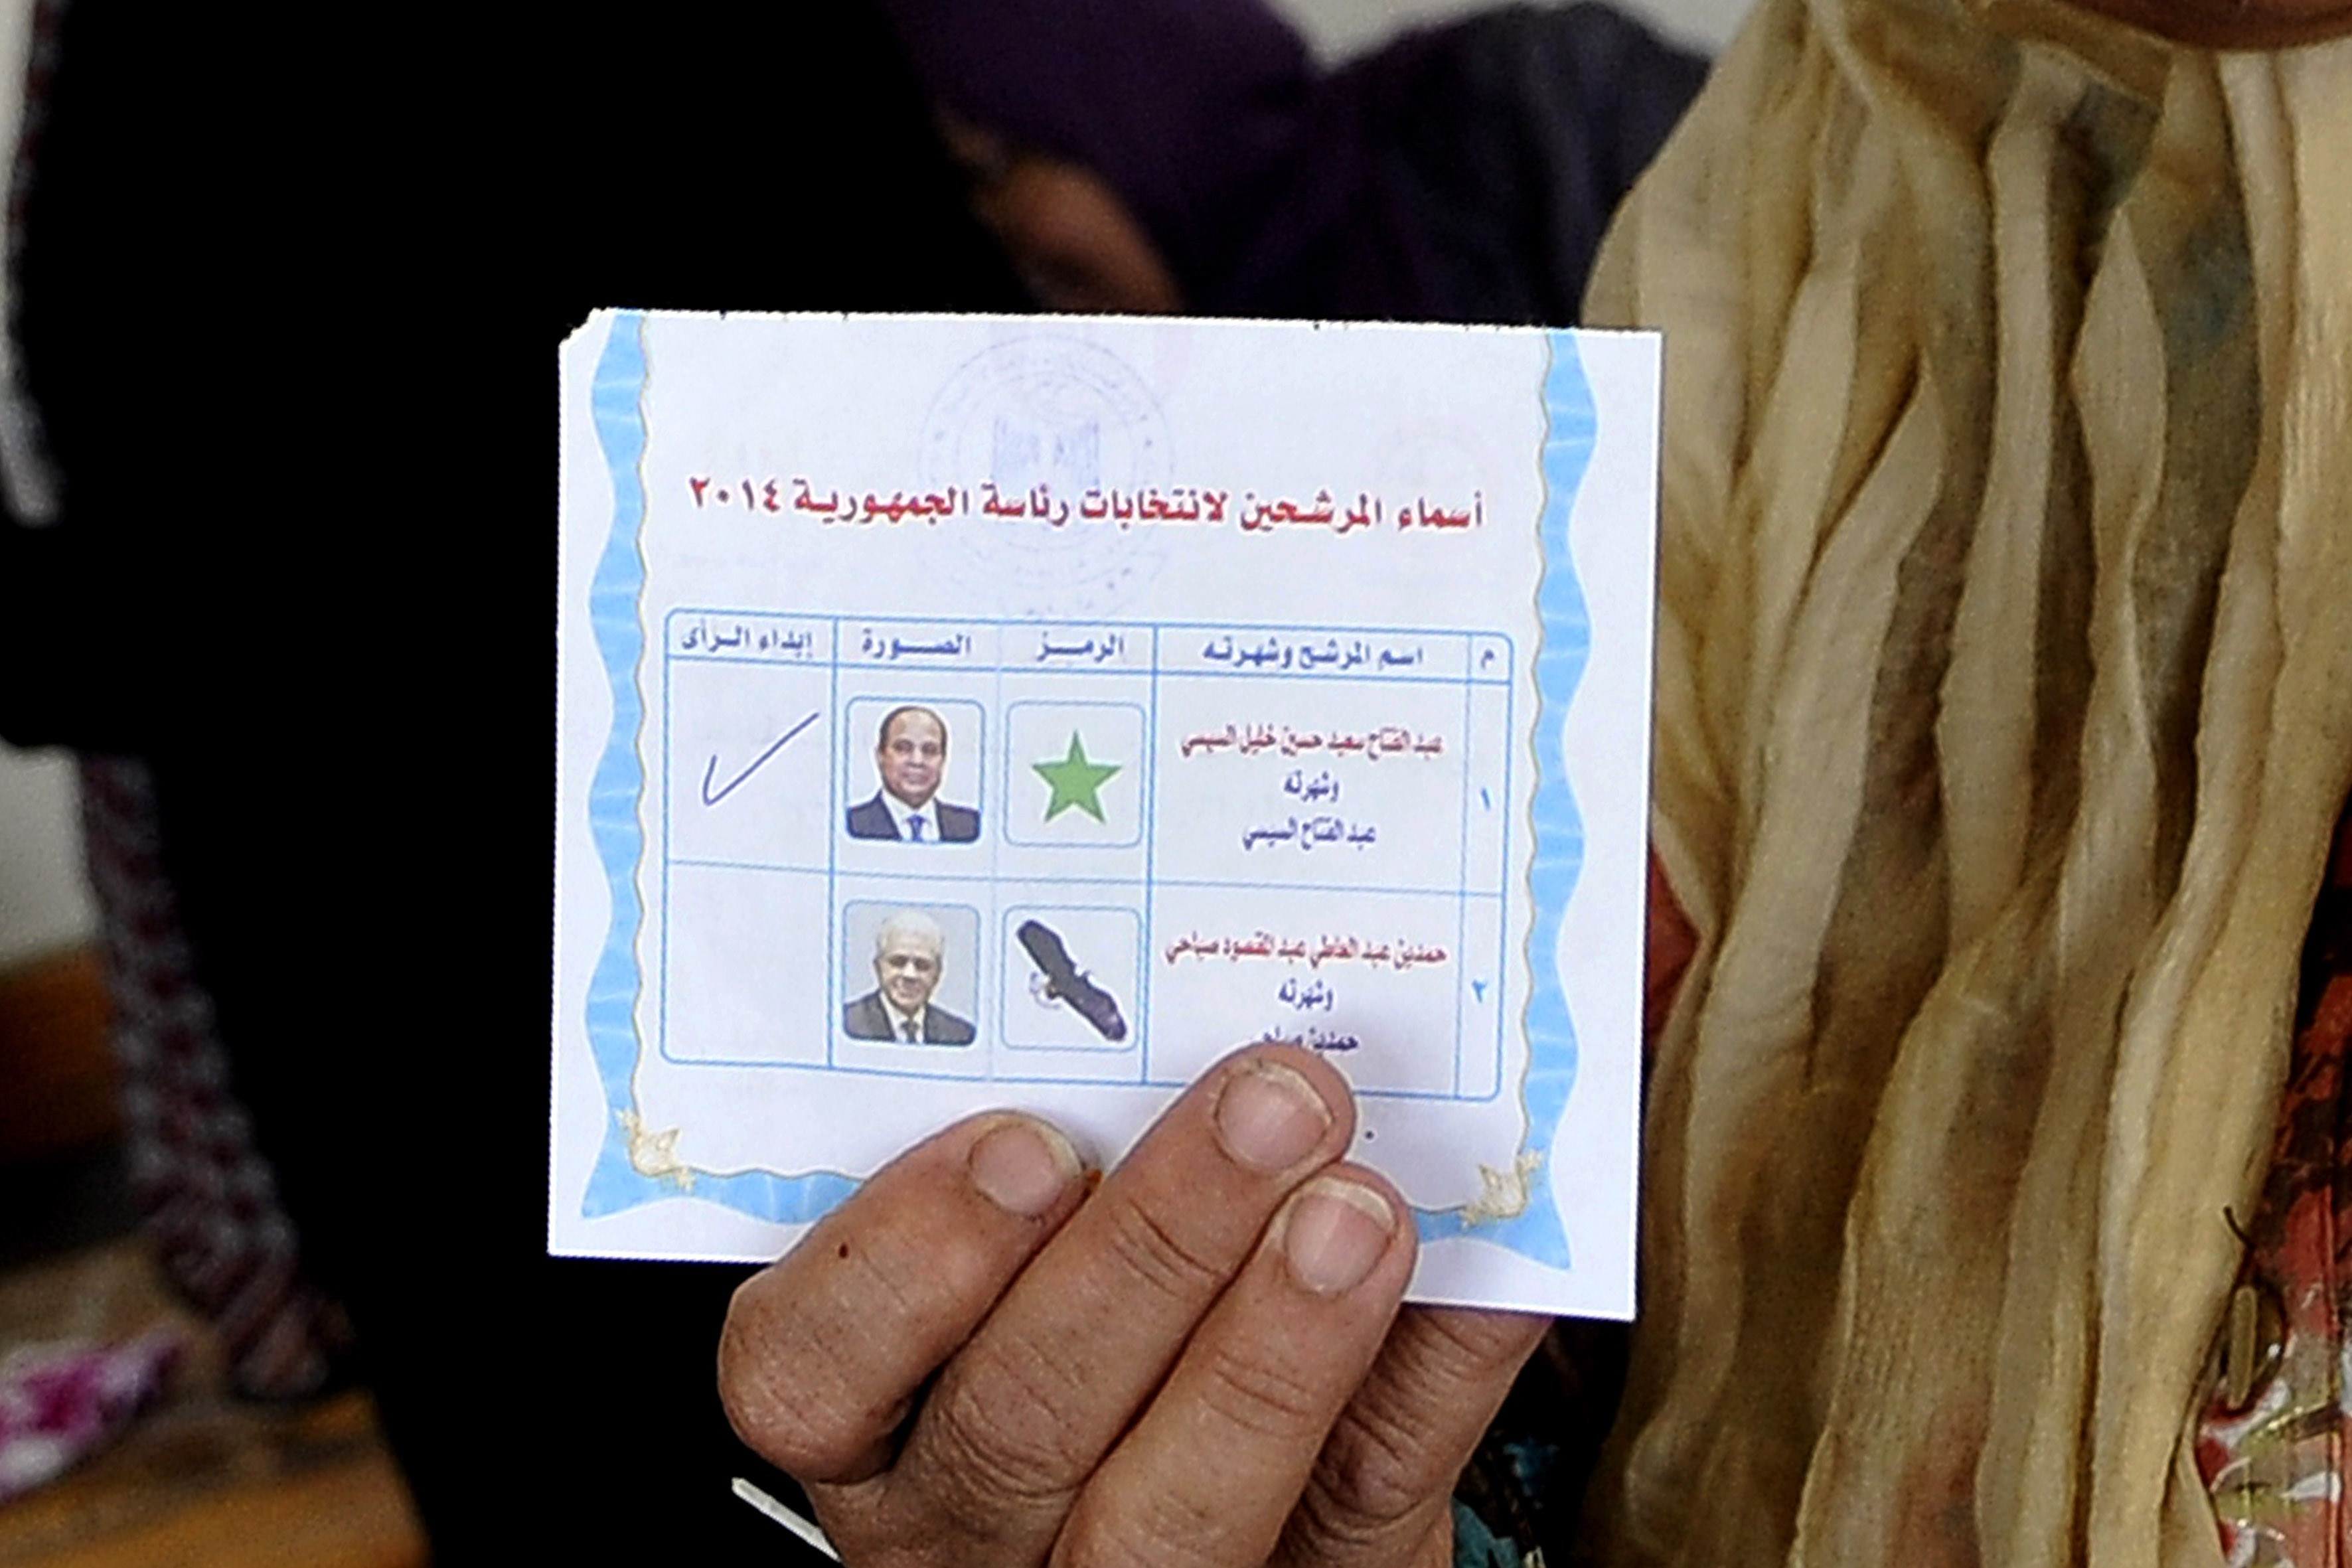 An Egyptian woman displays her ballot card at a polling station in the Mediterranean port city of Alexandria on May 26, 2014. Former defence minister Abdel Fattah Al-Sisi was elected president by 96.9% of valid votes, totaling 23,780,104, beating the only other contender, Nasserist politician Hamdeen Sabahy. (AFP PHOTO/ STR)